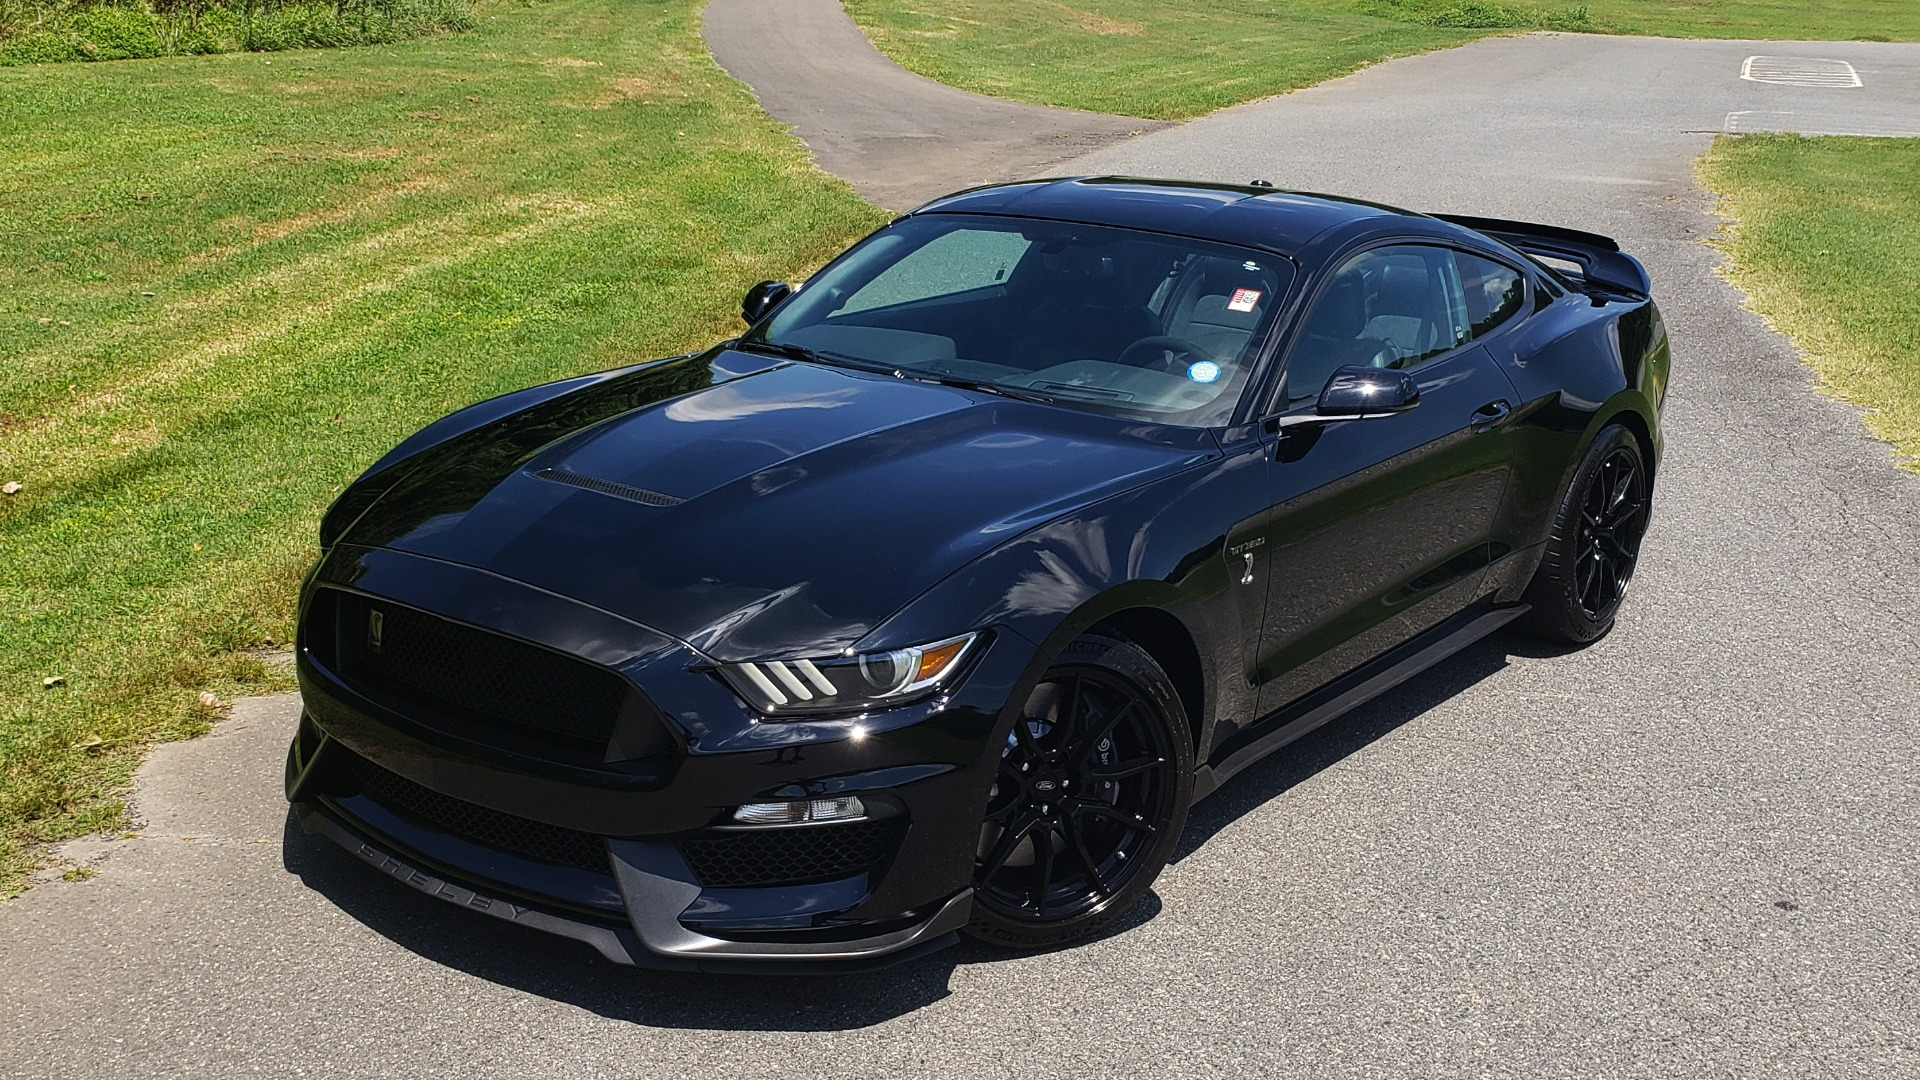 Used 2019 Ford MUSTANG SHELBY GT350 COUPE / TECH PKG / B&O SND / NAV / HNDLNG PKG / REARVIEW for sale Sold at Formula Imports in Charlotte NC 28227 2